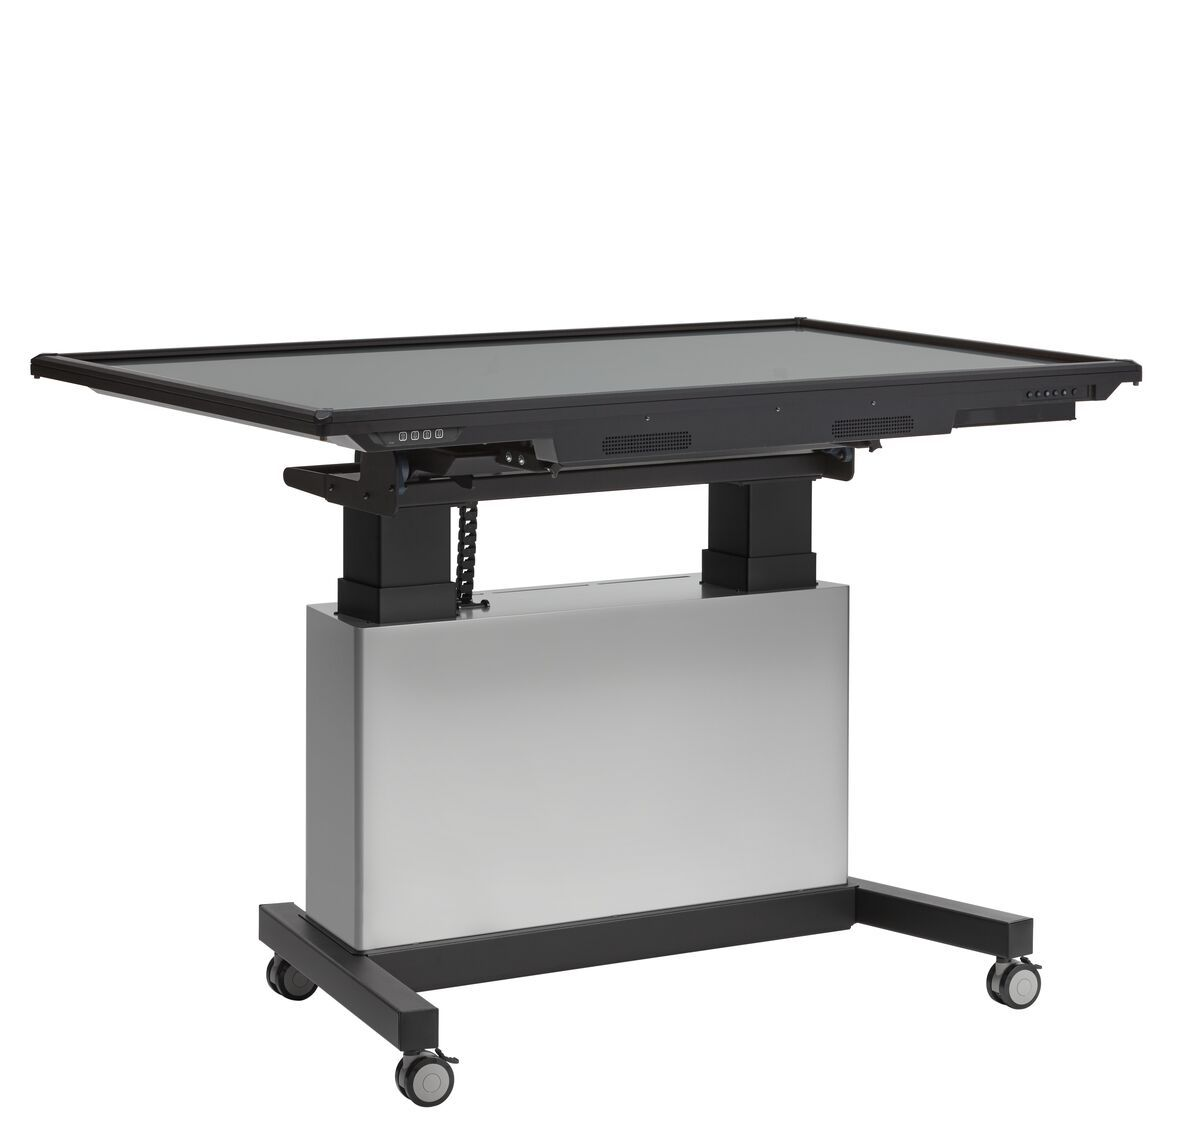 Vogel's PFTE 7121 Touch table motorized cabinet - Application